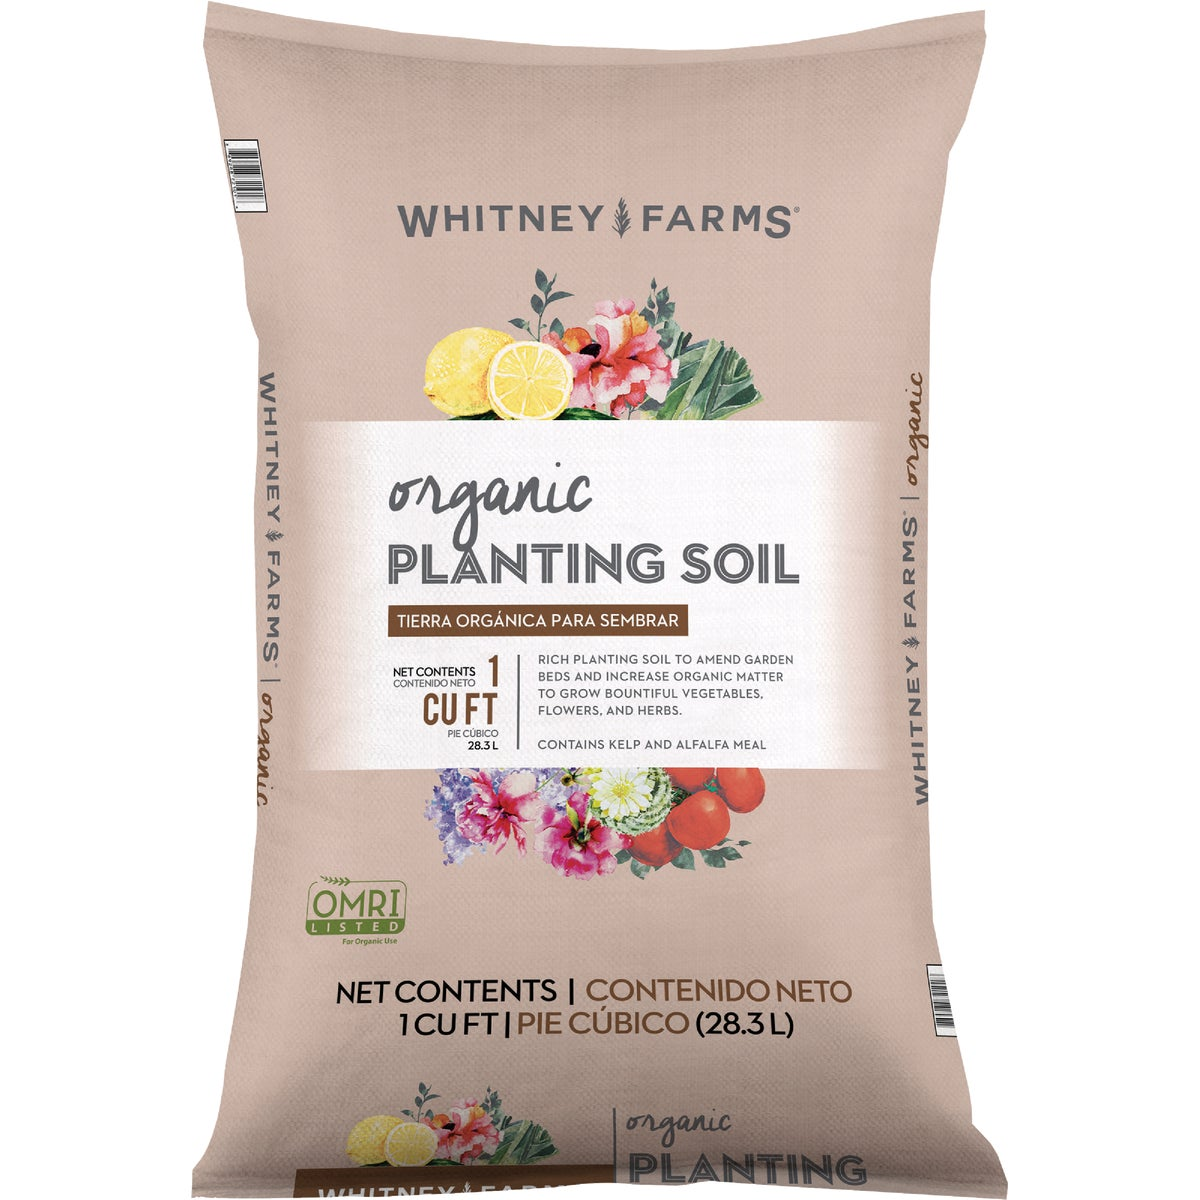 1CF WF ORGANC PLANT SOIL - 72151240 by Scotts Organics